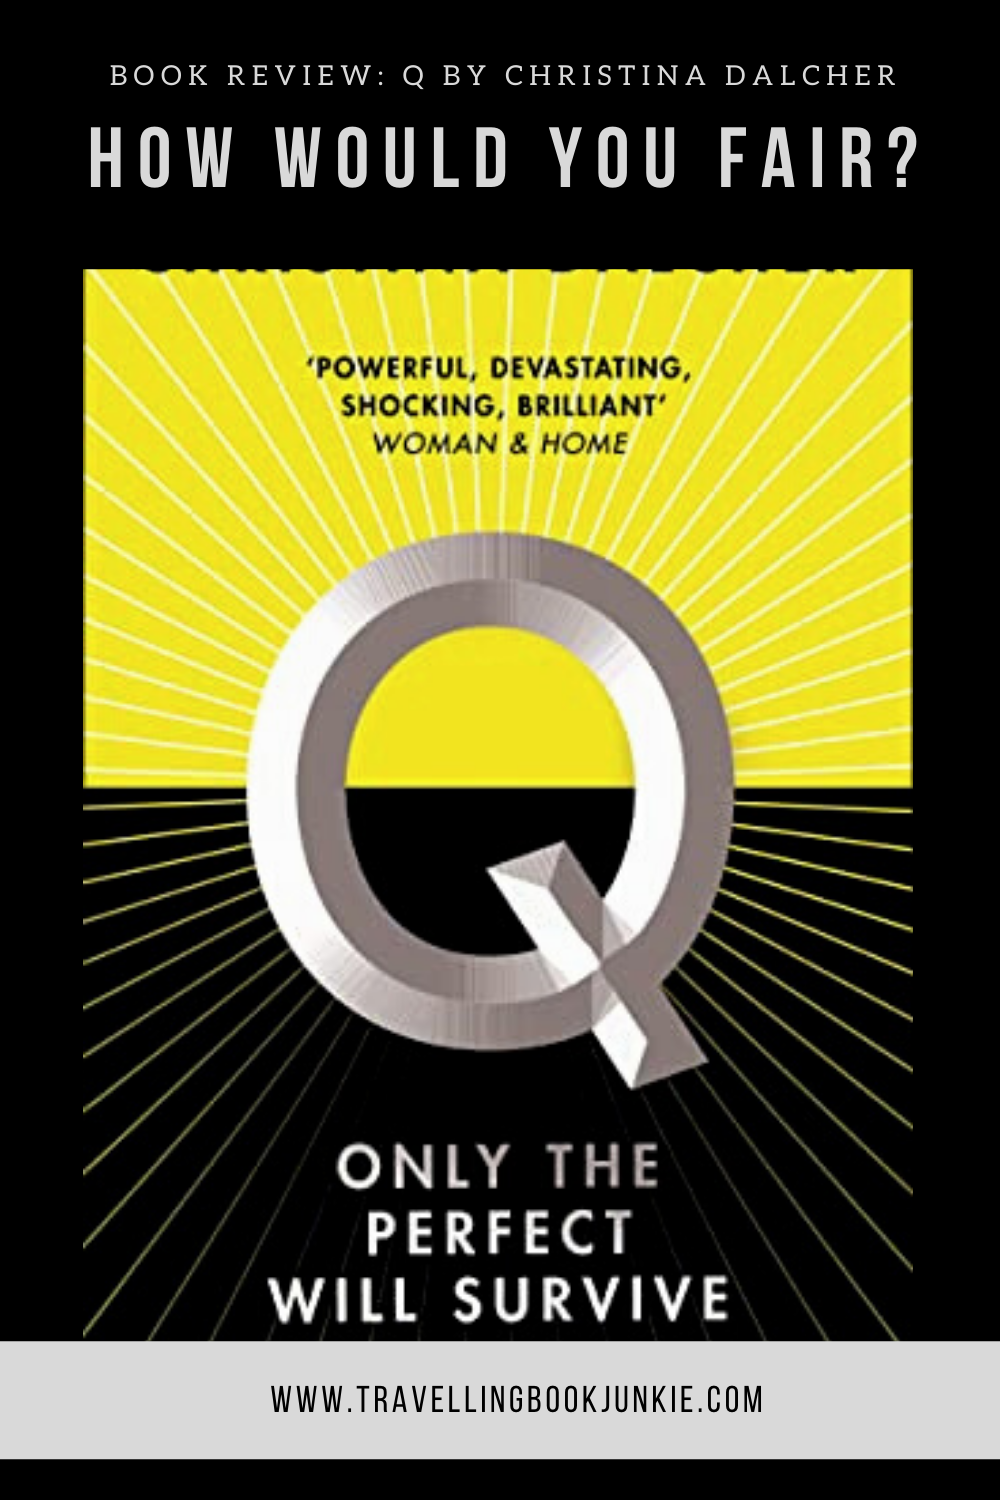 A full book review of Q by Christina Dalcher, a dystopian novel about how IQ will rule. See more via @tbookjunkie